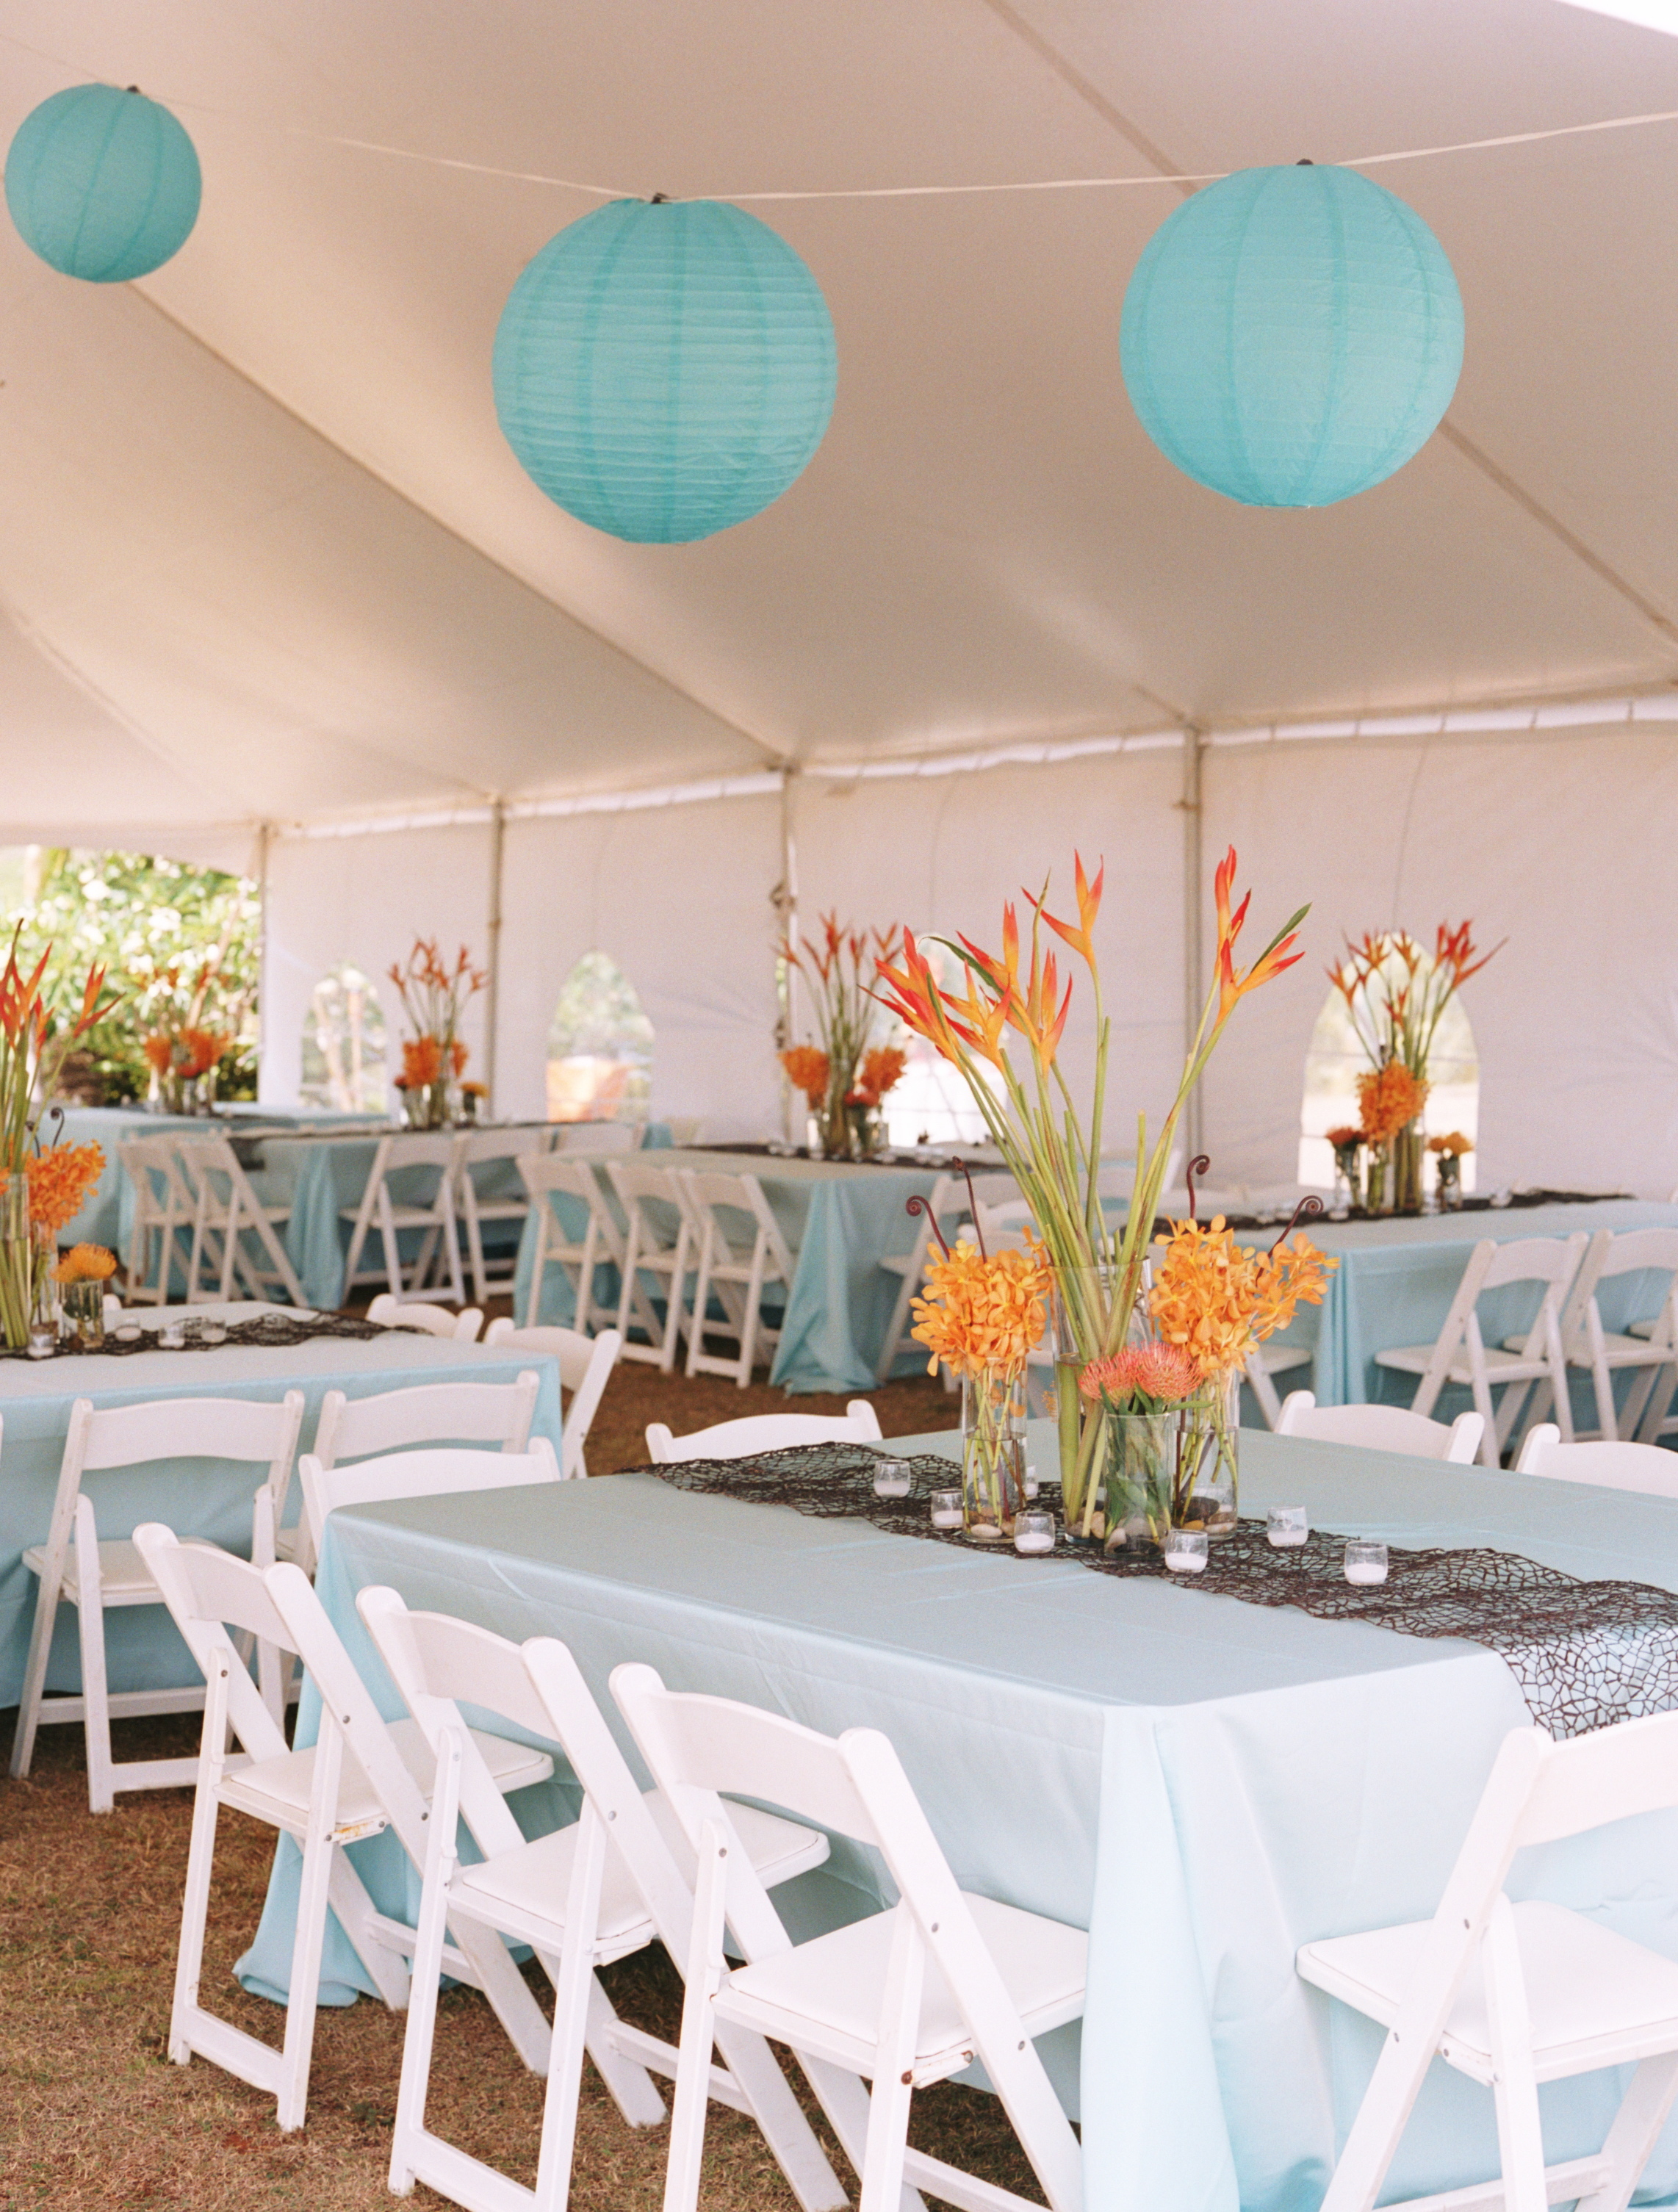 301 Moved Permanently Turquoise Table Ie Turquoise Weddings